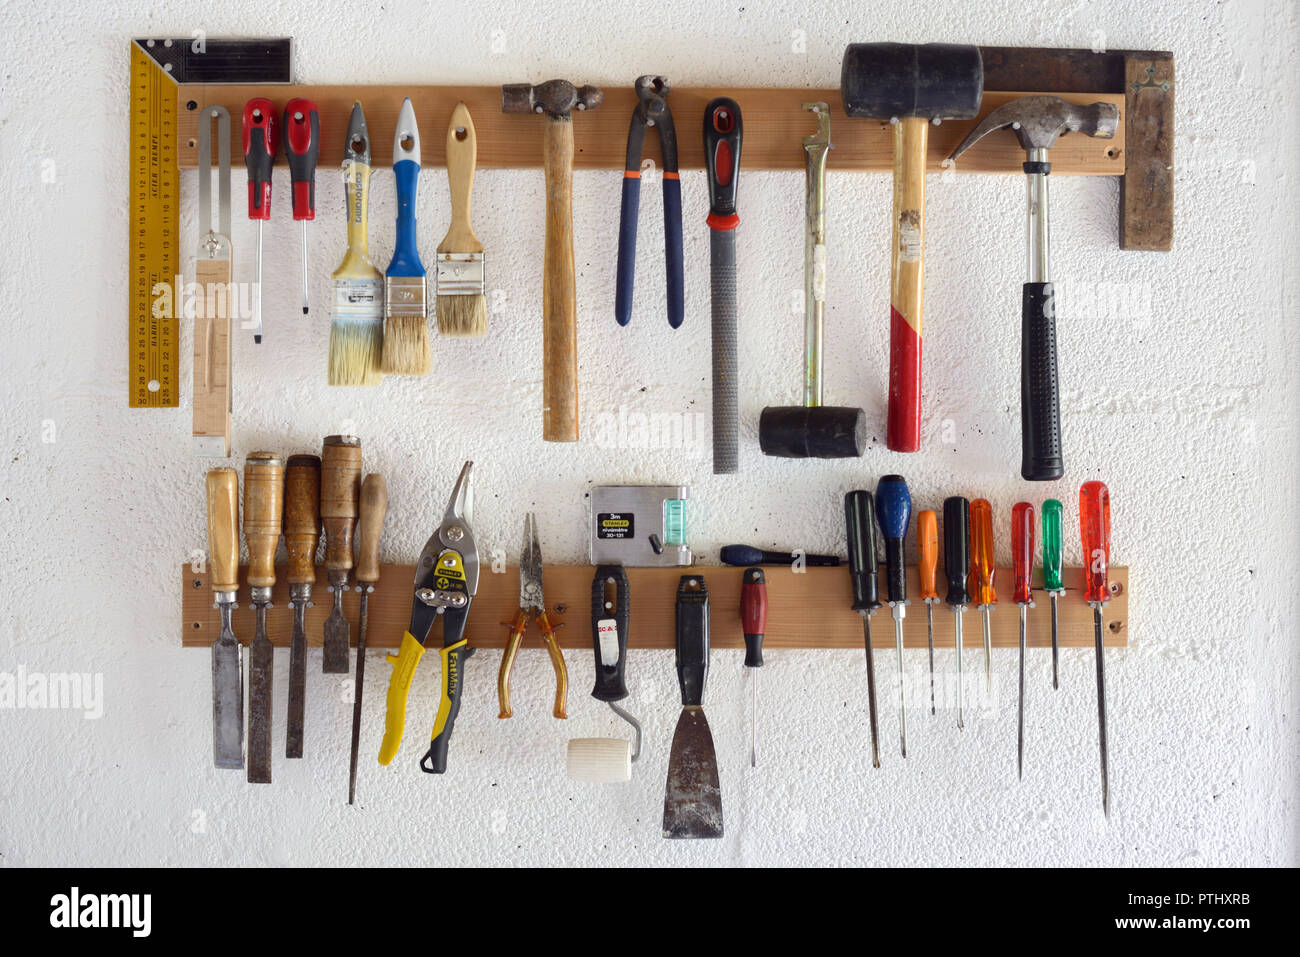 Woodworking Tools & Hand Tools including Screw Drivers, Paint Brushes and Hammers Hanging in Workshop or Garage Wall-Mounted Tool Rack - Stock Image